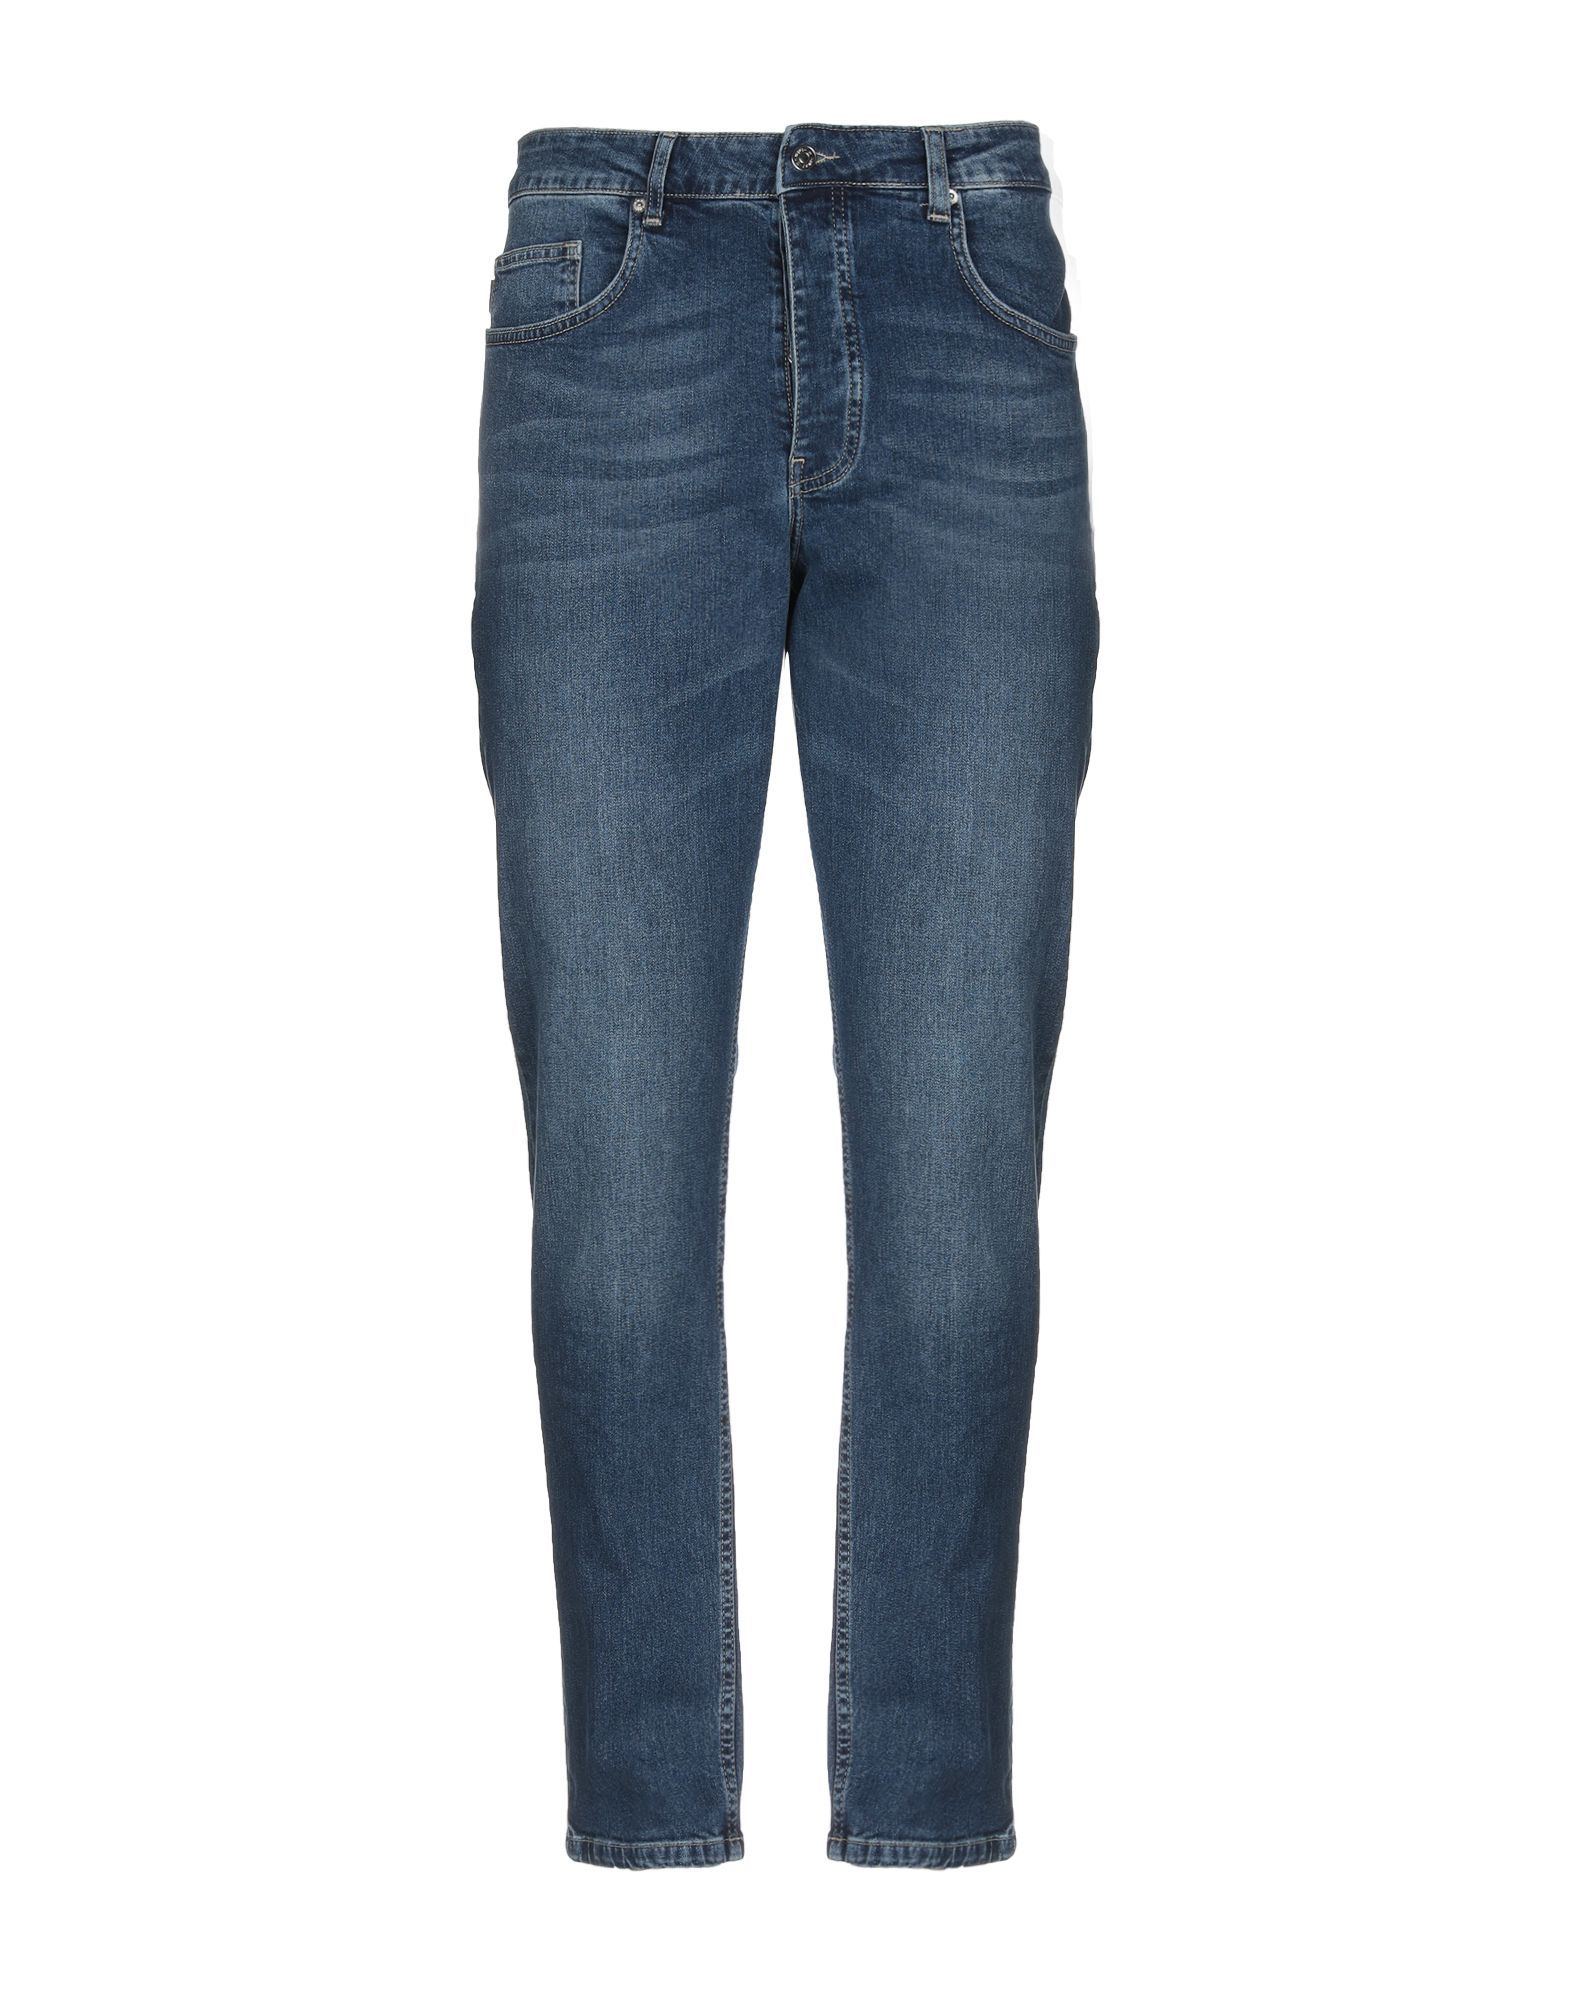 Minimum Blue Cotton Mid Rise Jeans